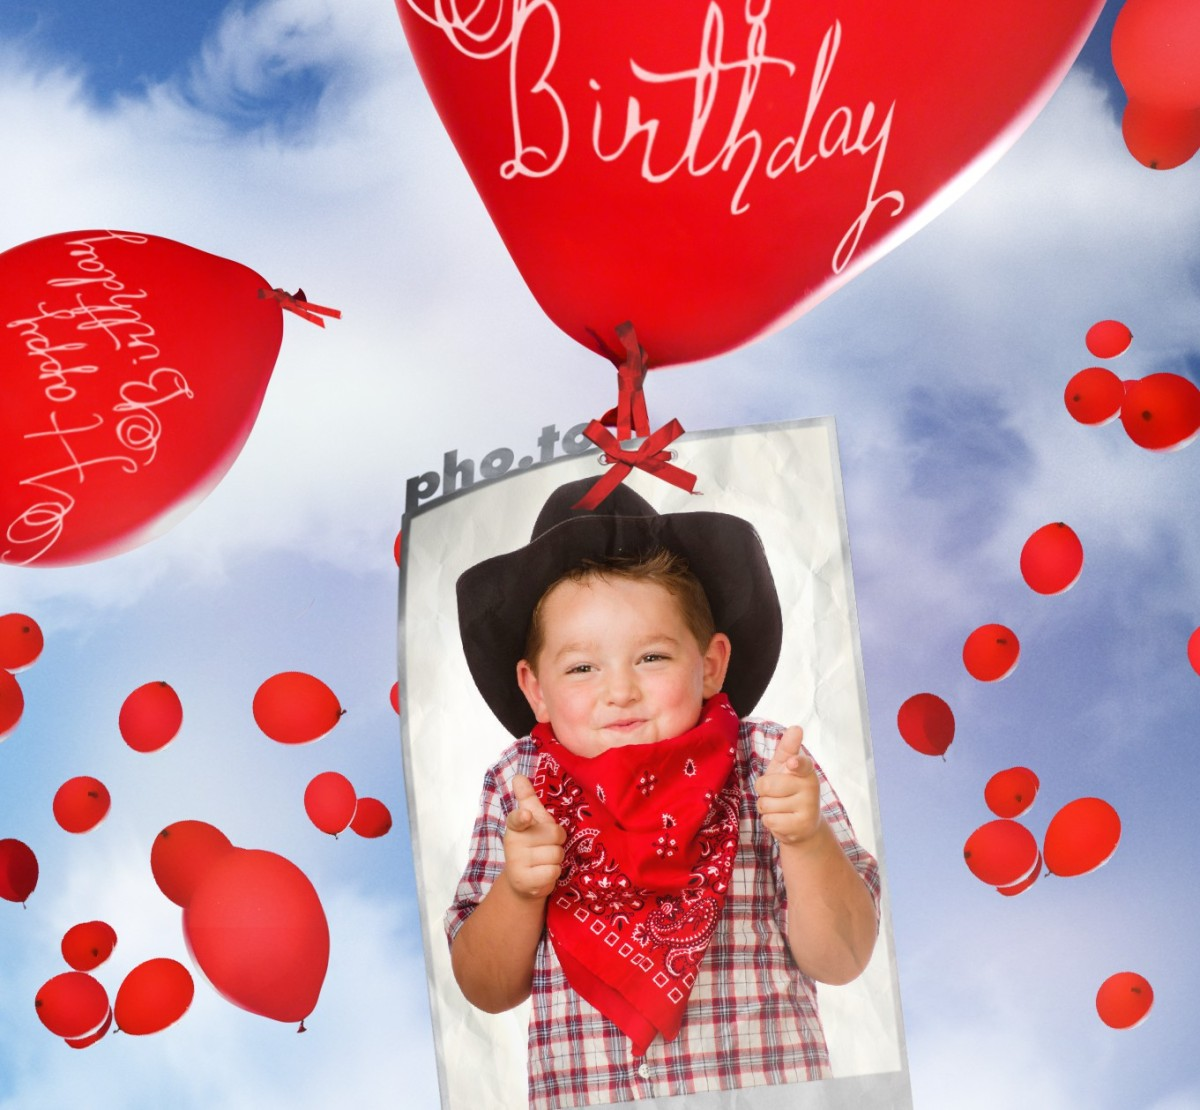 Birthday Ecard With Balloons Printable Template